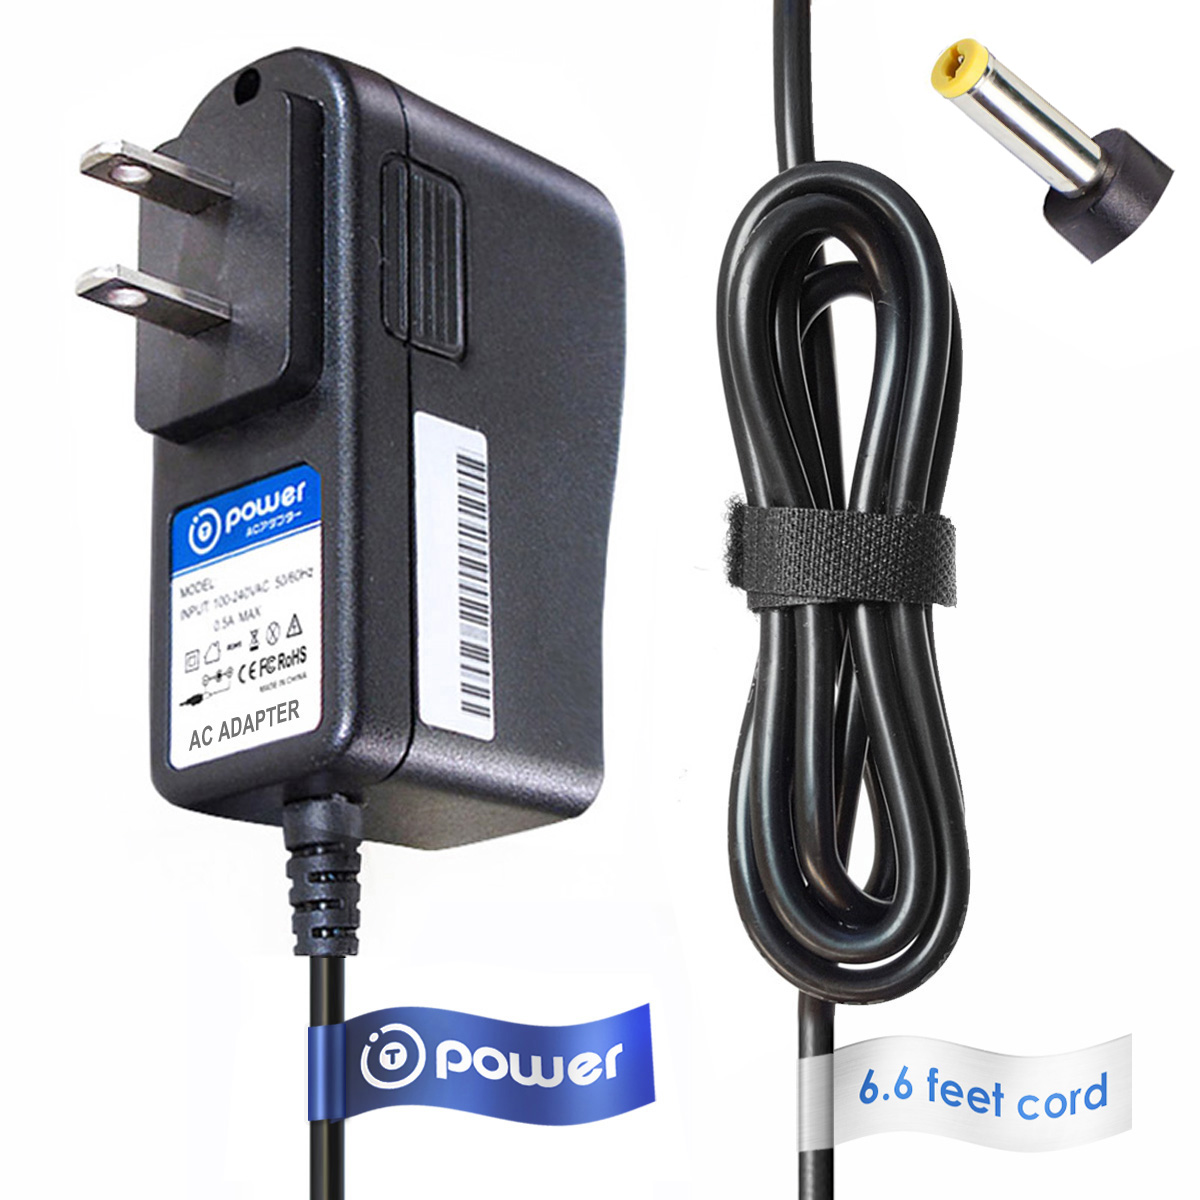 T-Power (6.6ft Long Cable) Ac Dc adapter for Steam Link played Game on your TV using Steam Link Power supply Charger Power supply Cord